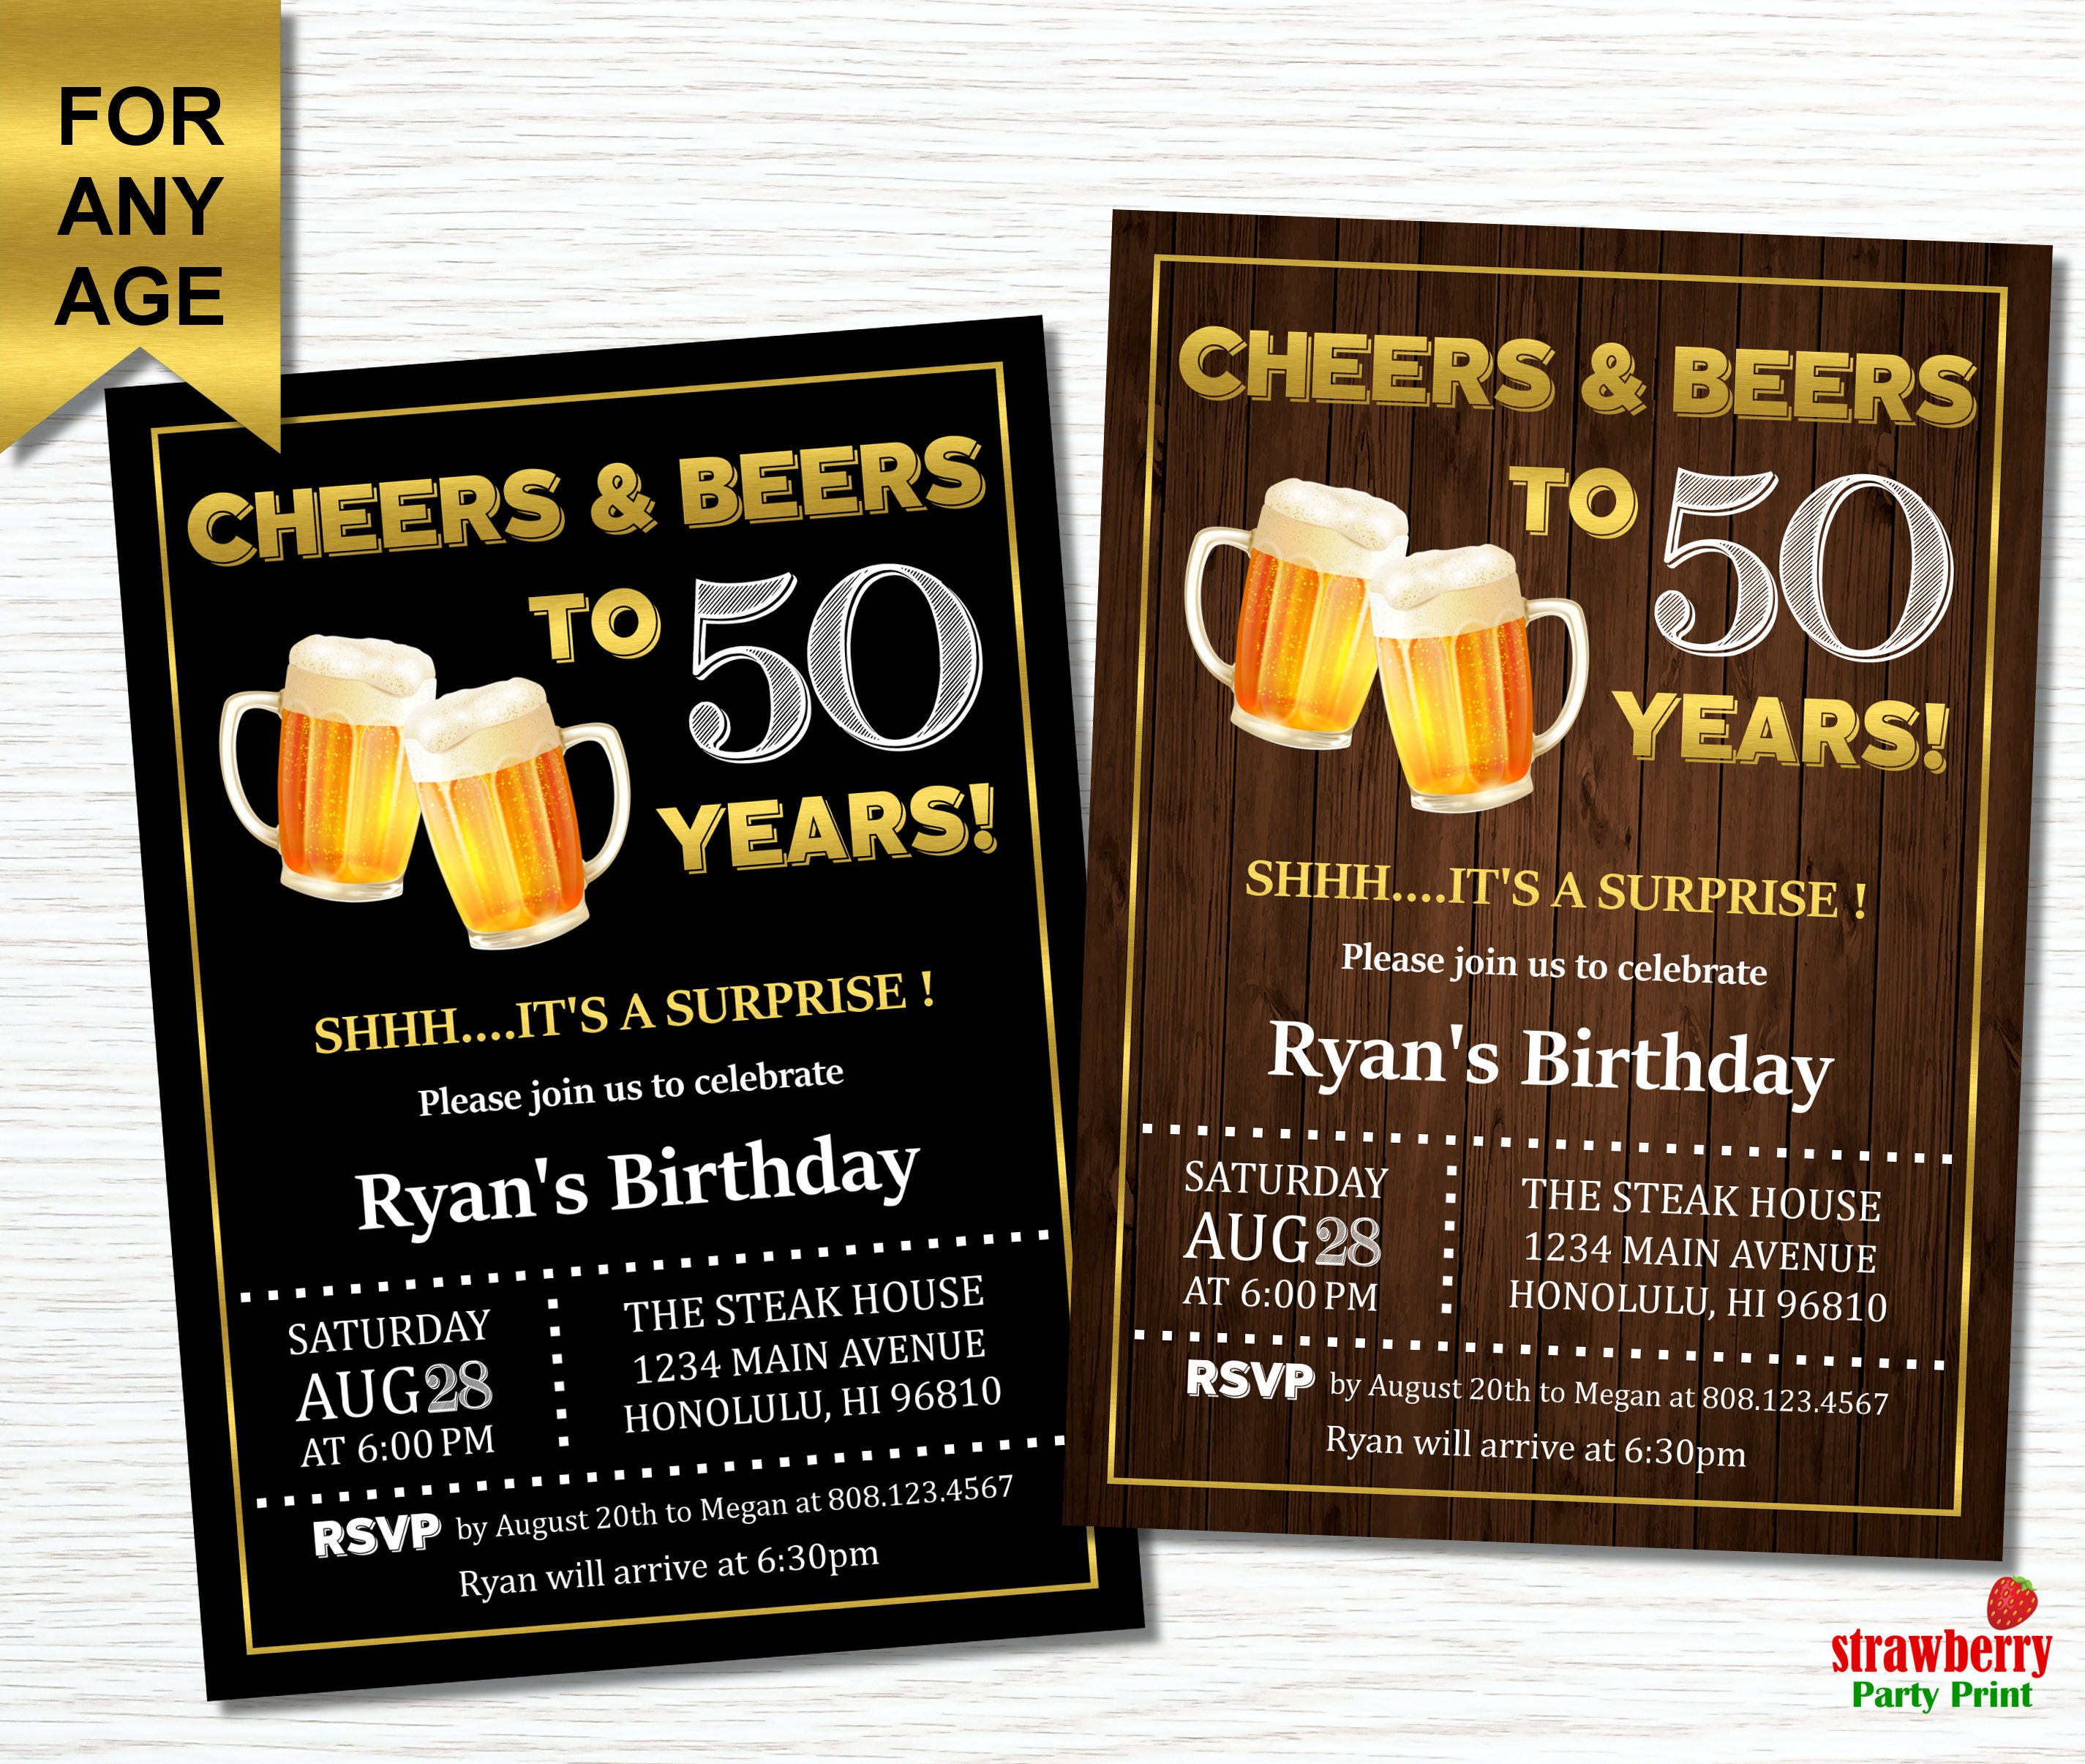 th Birthday Invitation for Men Cheers and Beers to